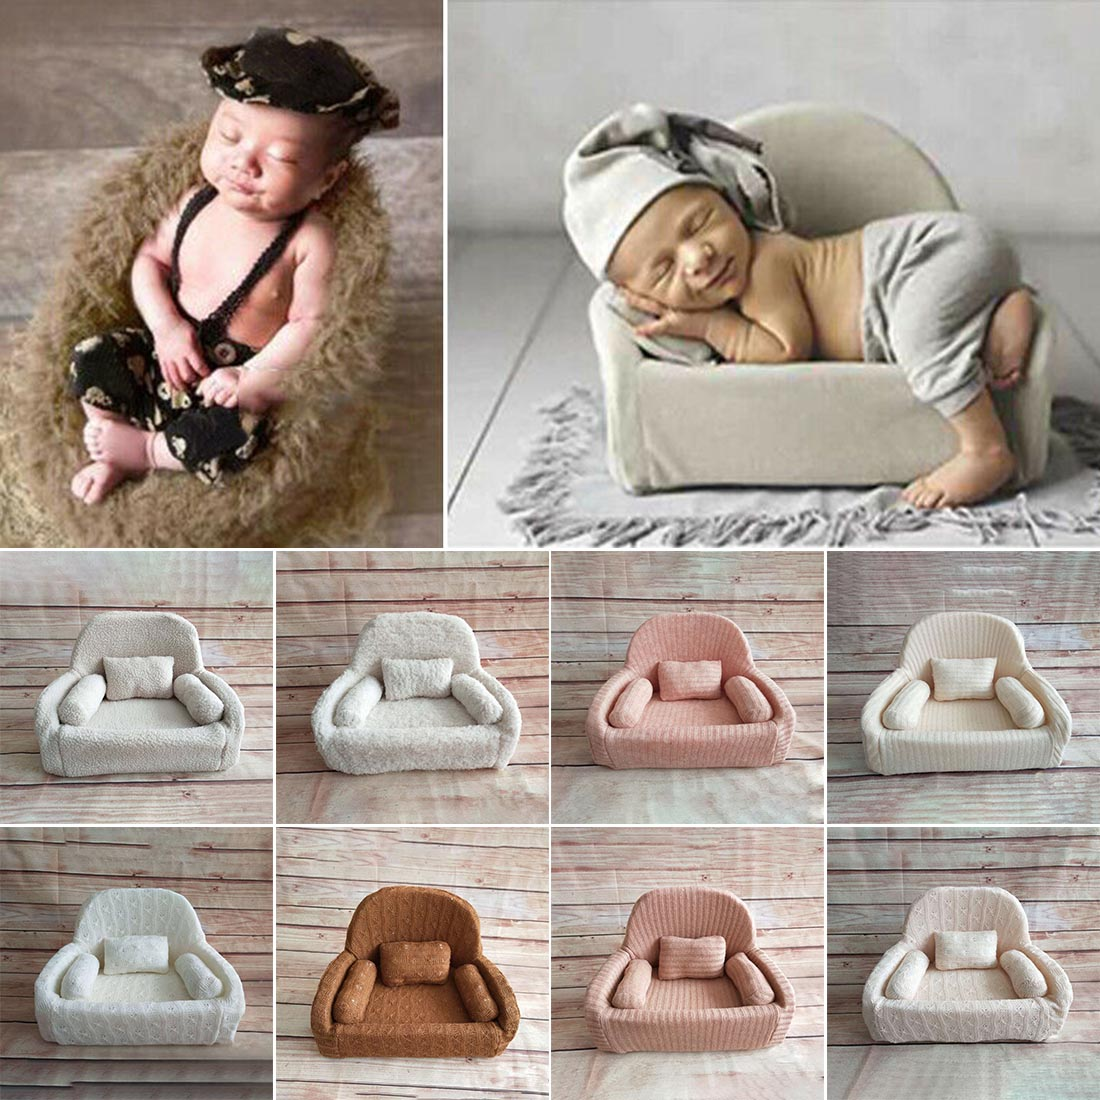 Mini Posing Sofa Pillow Set Chair Decoration Baby Photography Accessories Infant Studio Shooting Props Newborn Photography Props